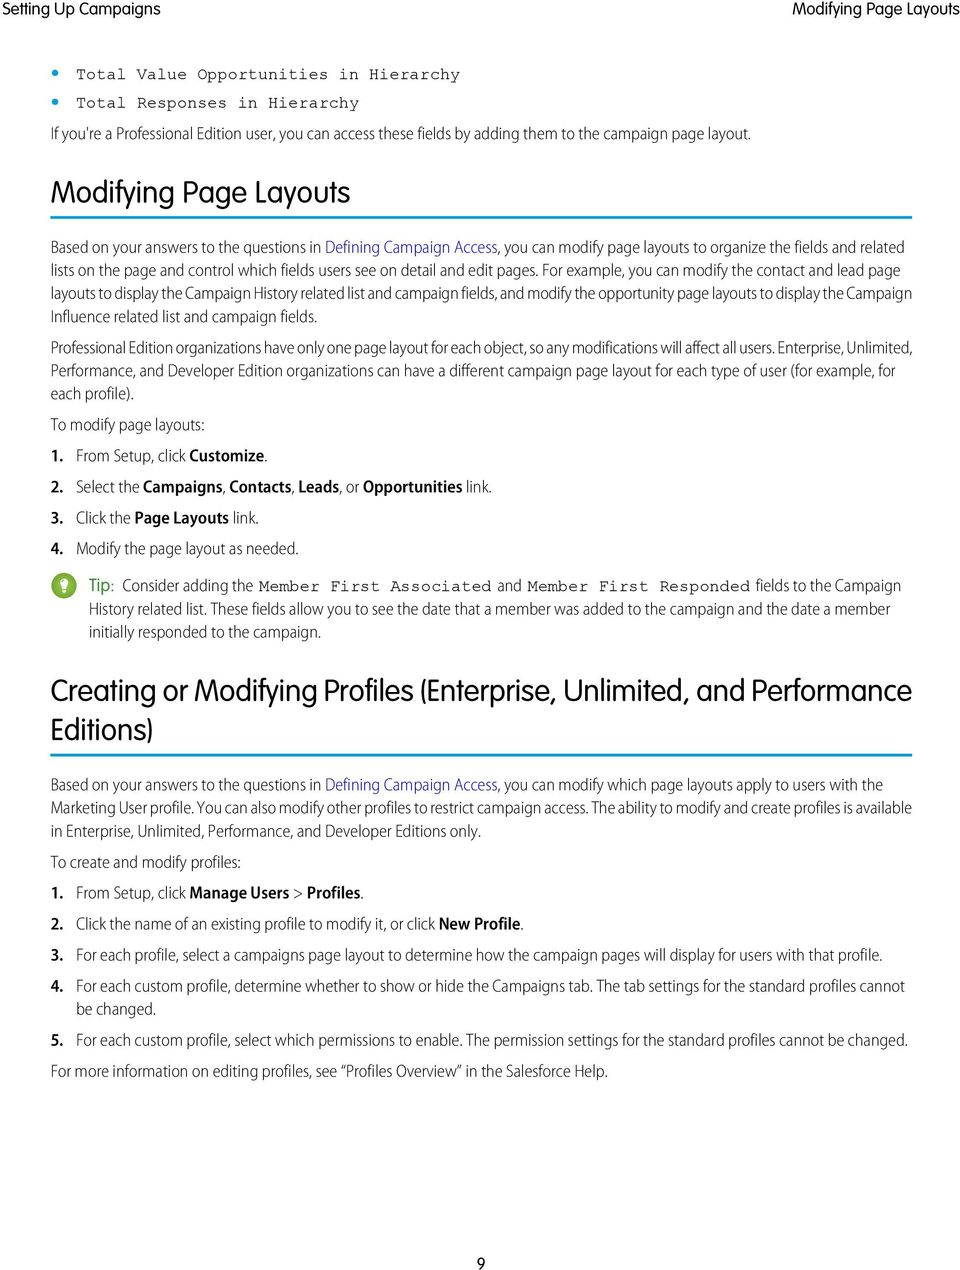 Modifying Page Layouts Based on your answers to the questions in Defining Campaign Access, you can modify page layouts to organize the fields and related lists on the page and control which fields